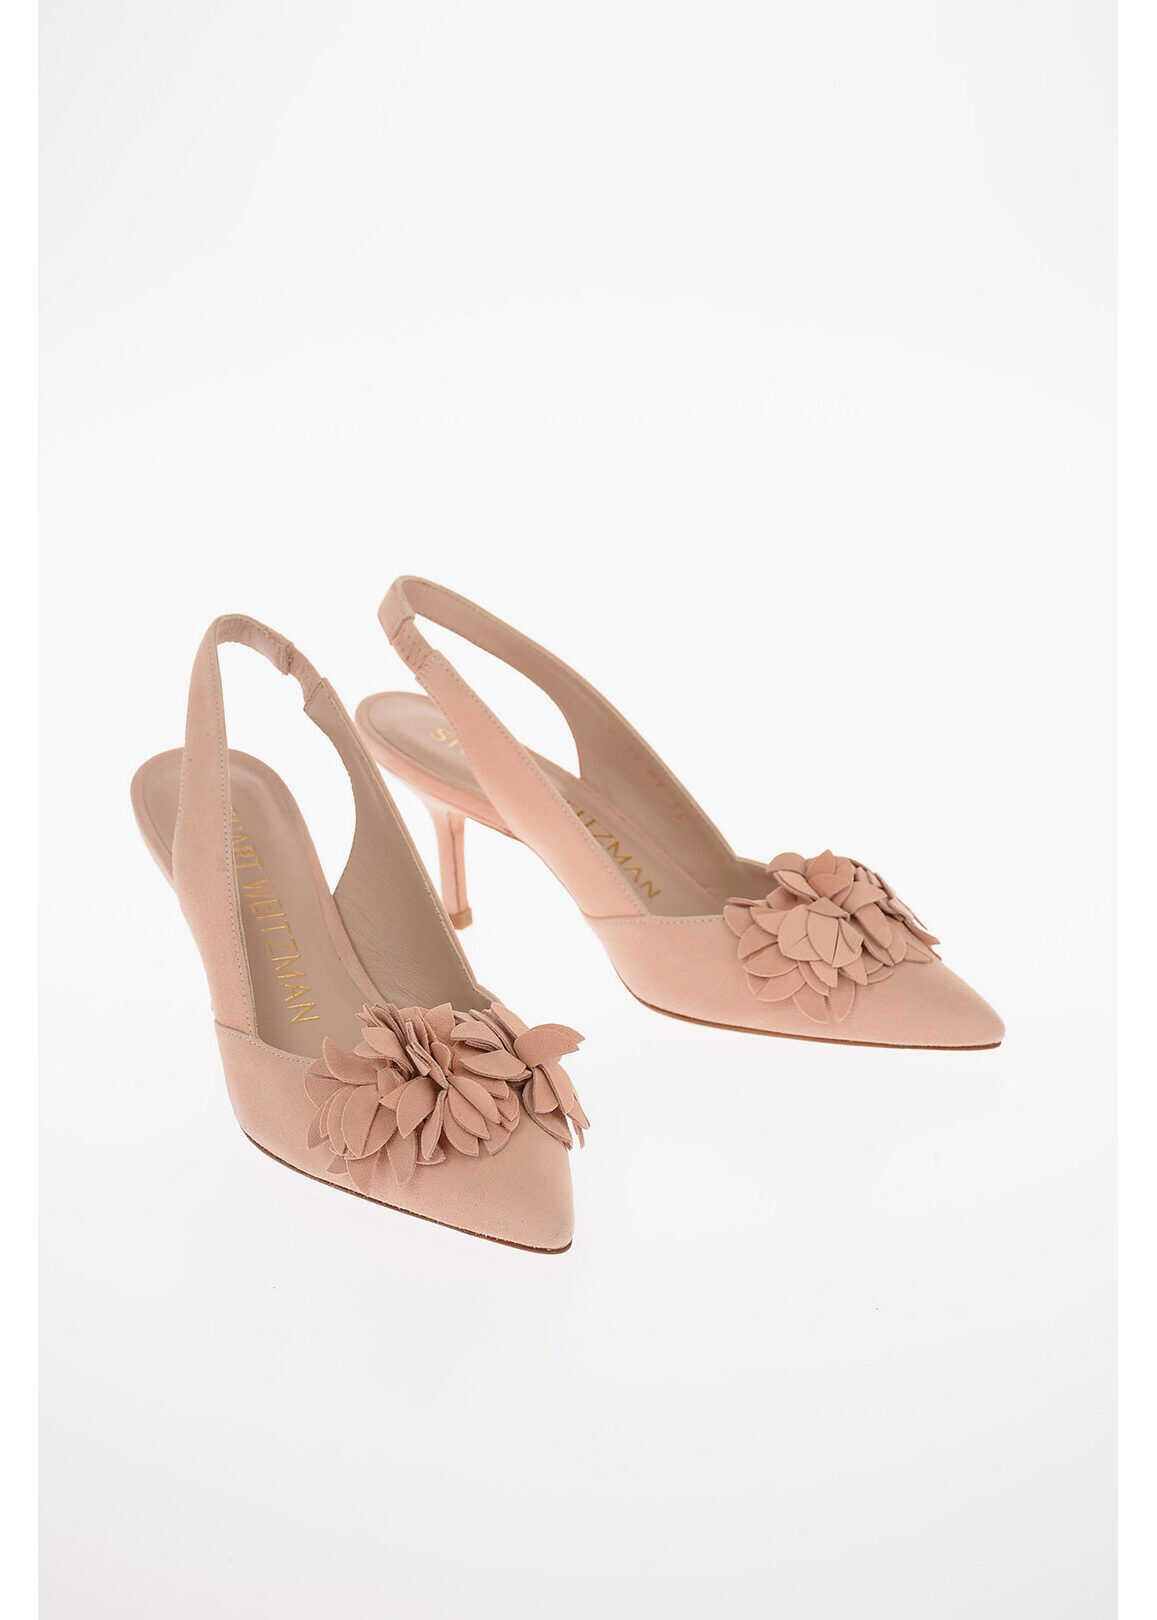 Stuart Weitzman Suede ROSELLA 75 Slingbacks with Floral Application 8 Cm PINK imagine b-mall.ro